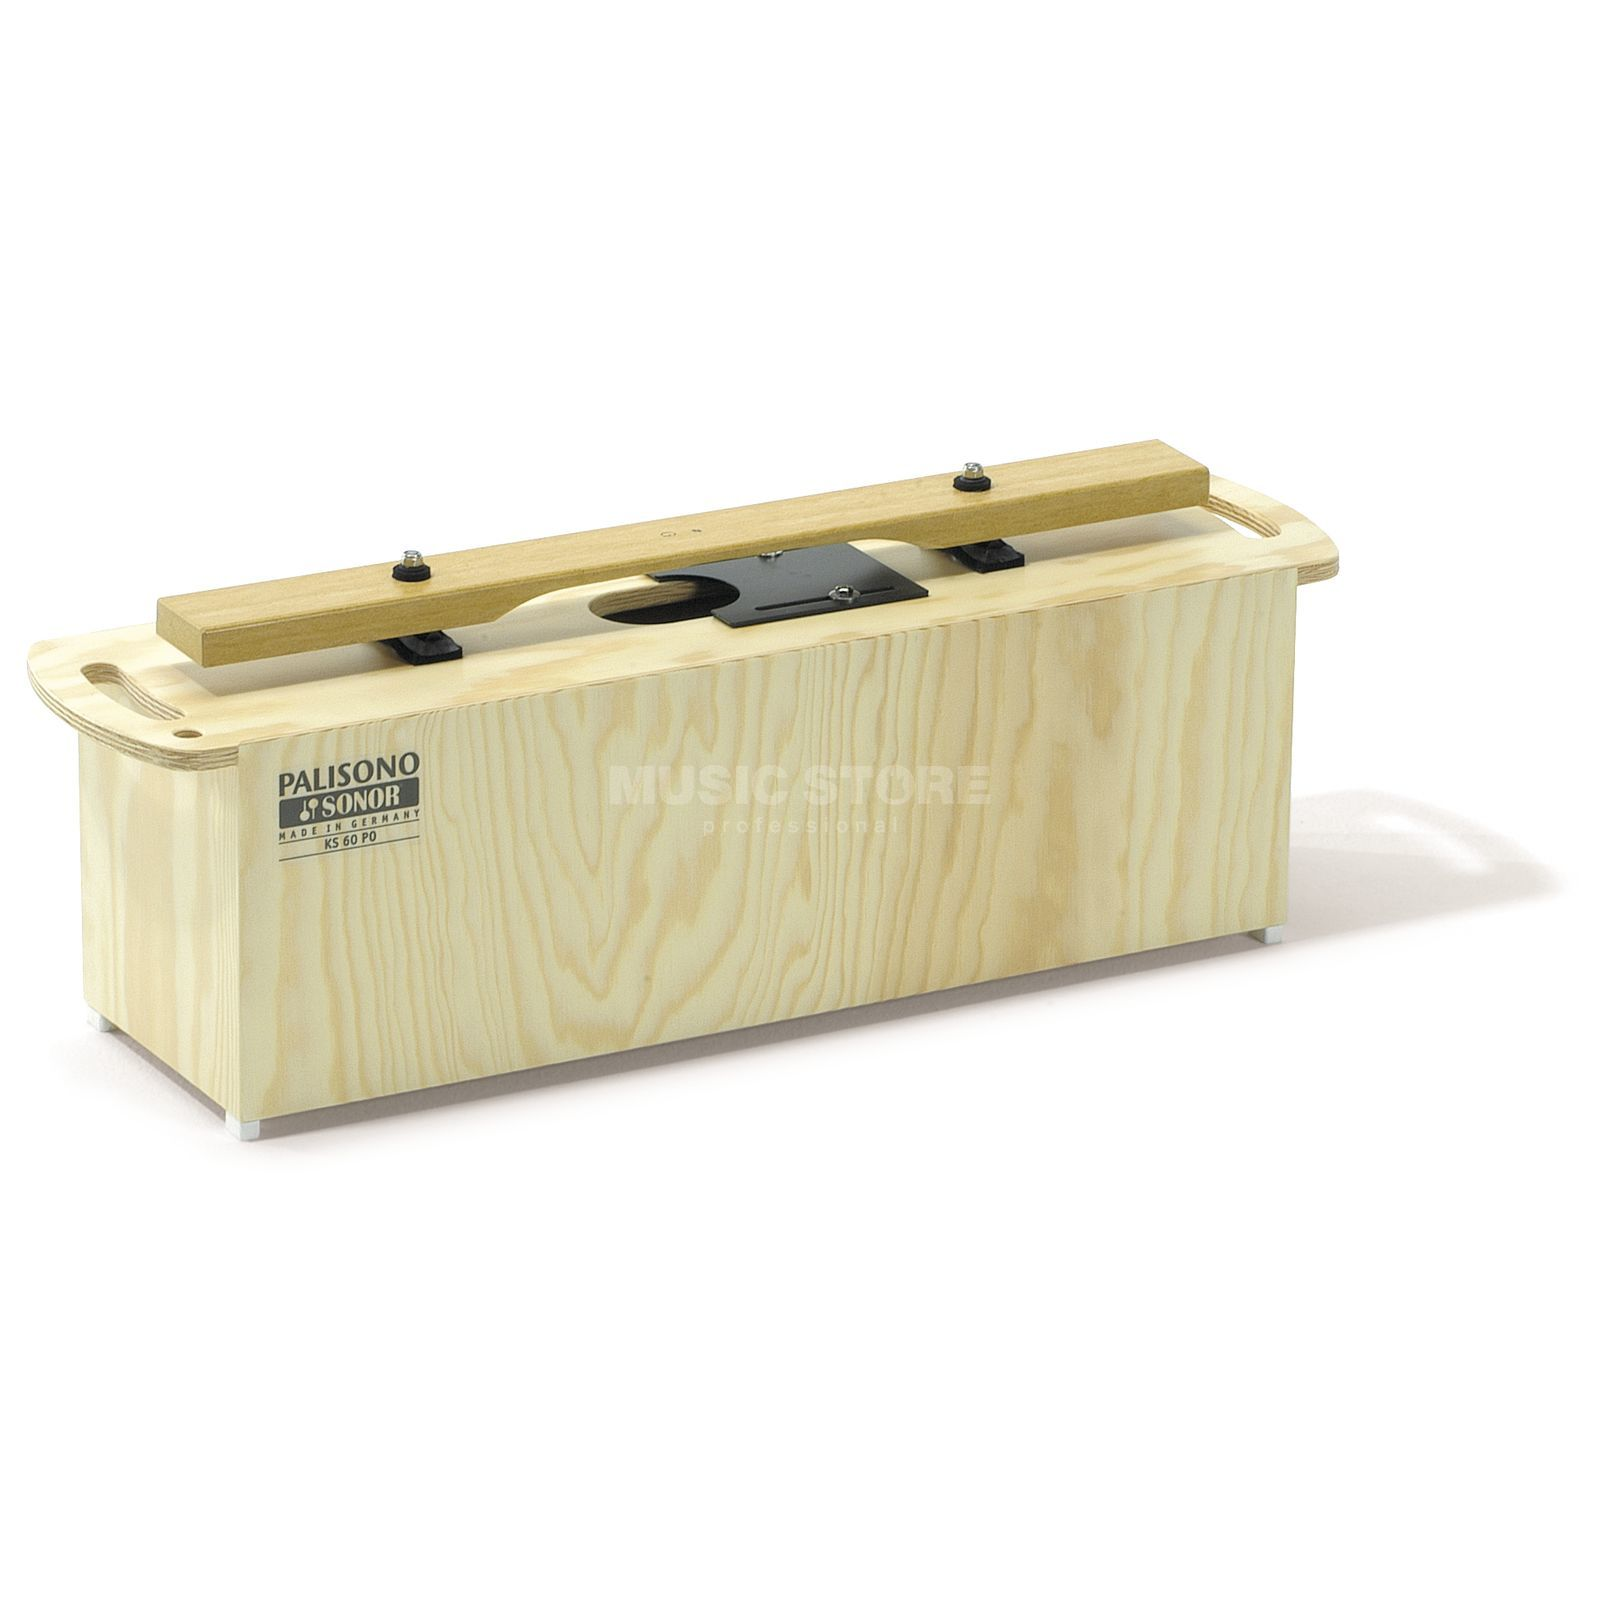 Sonor Chime Bar NKS 60 PO Palisono, Contra Bass G, Xylophone Product Image